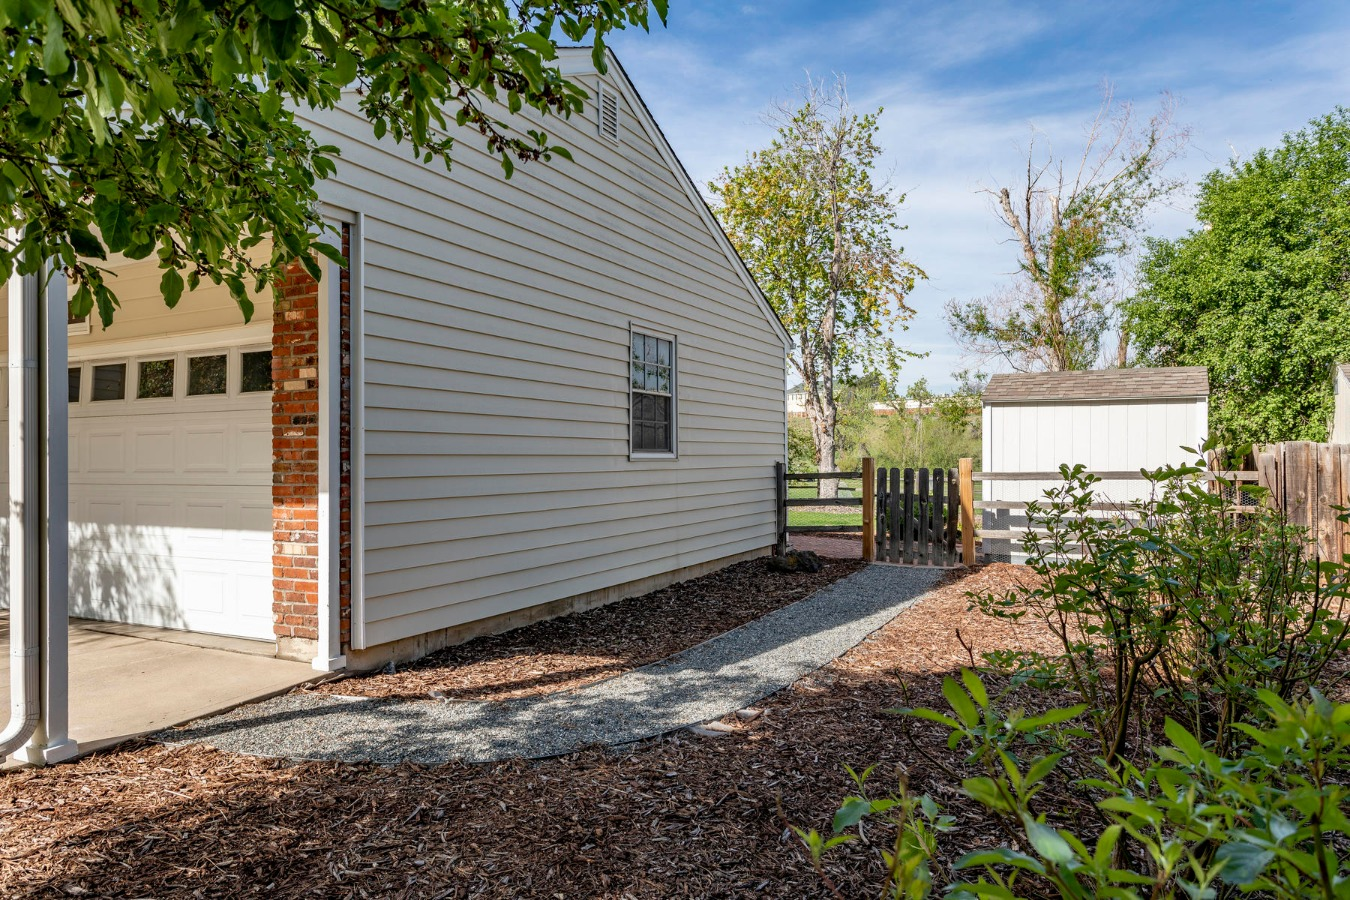 Garden/Storage Shed is Included with this Home